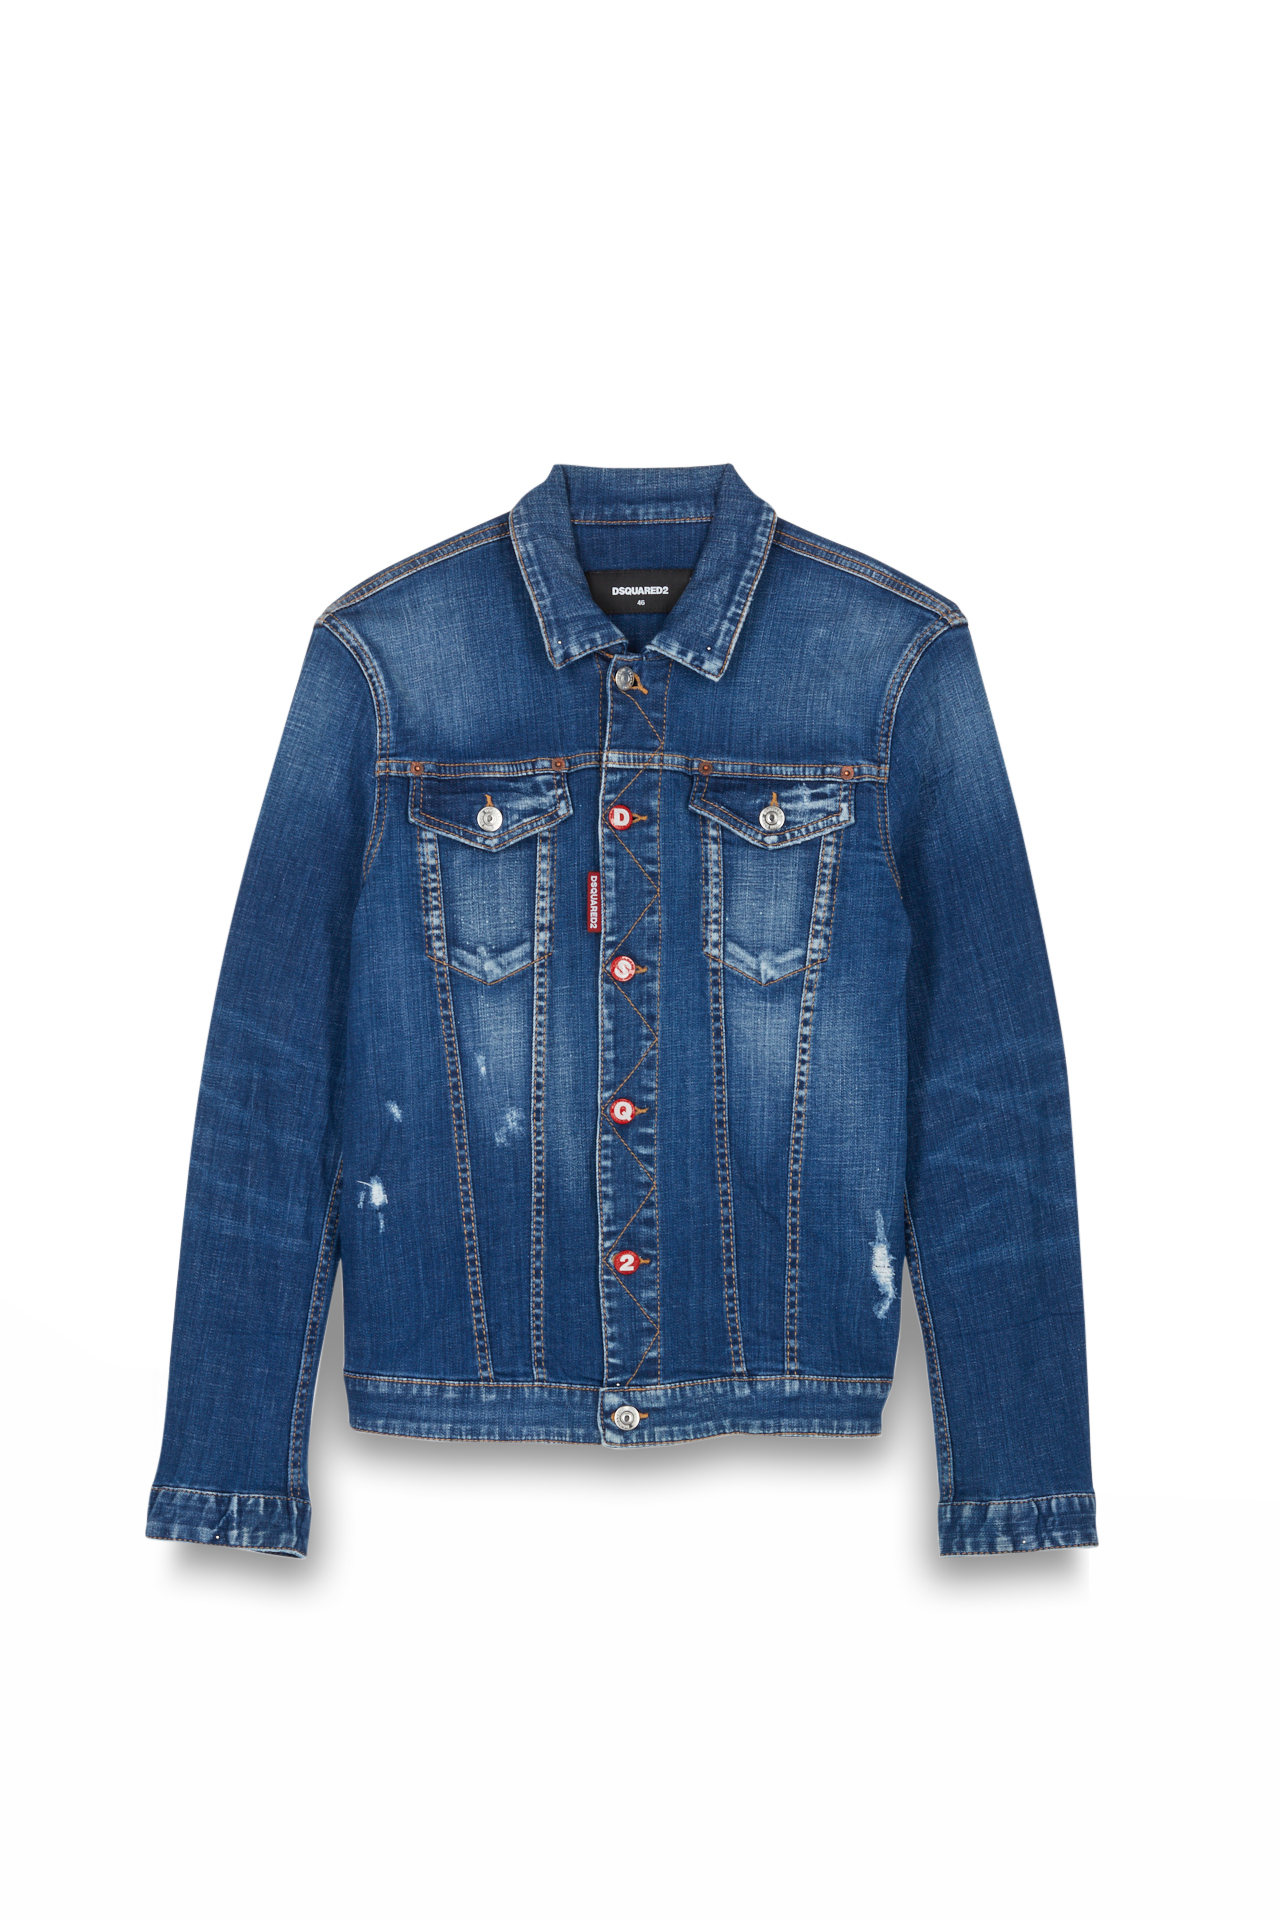 Dsquared2 Denim jacket La Vallée Village